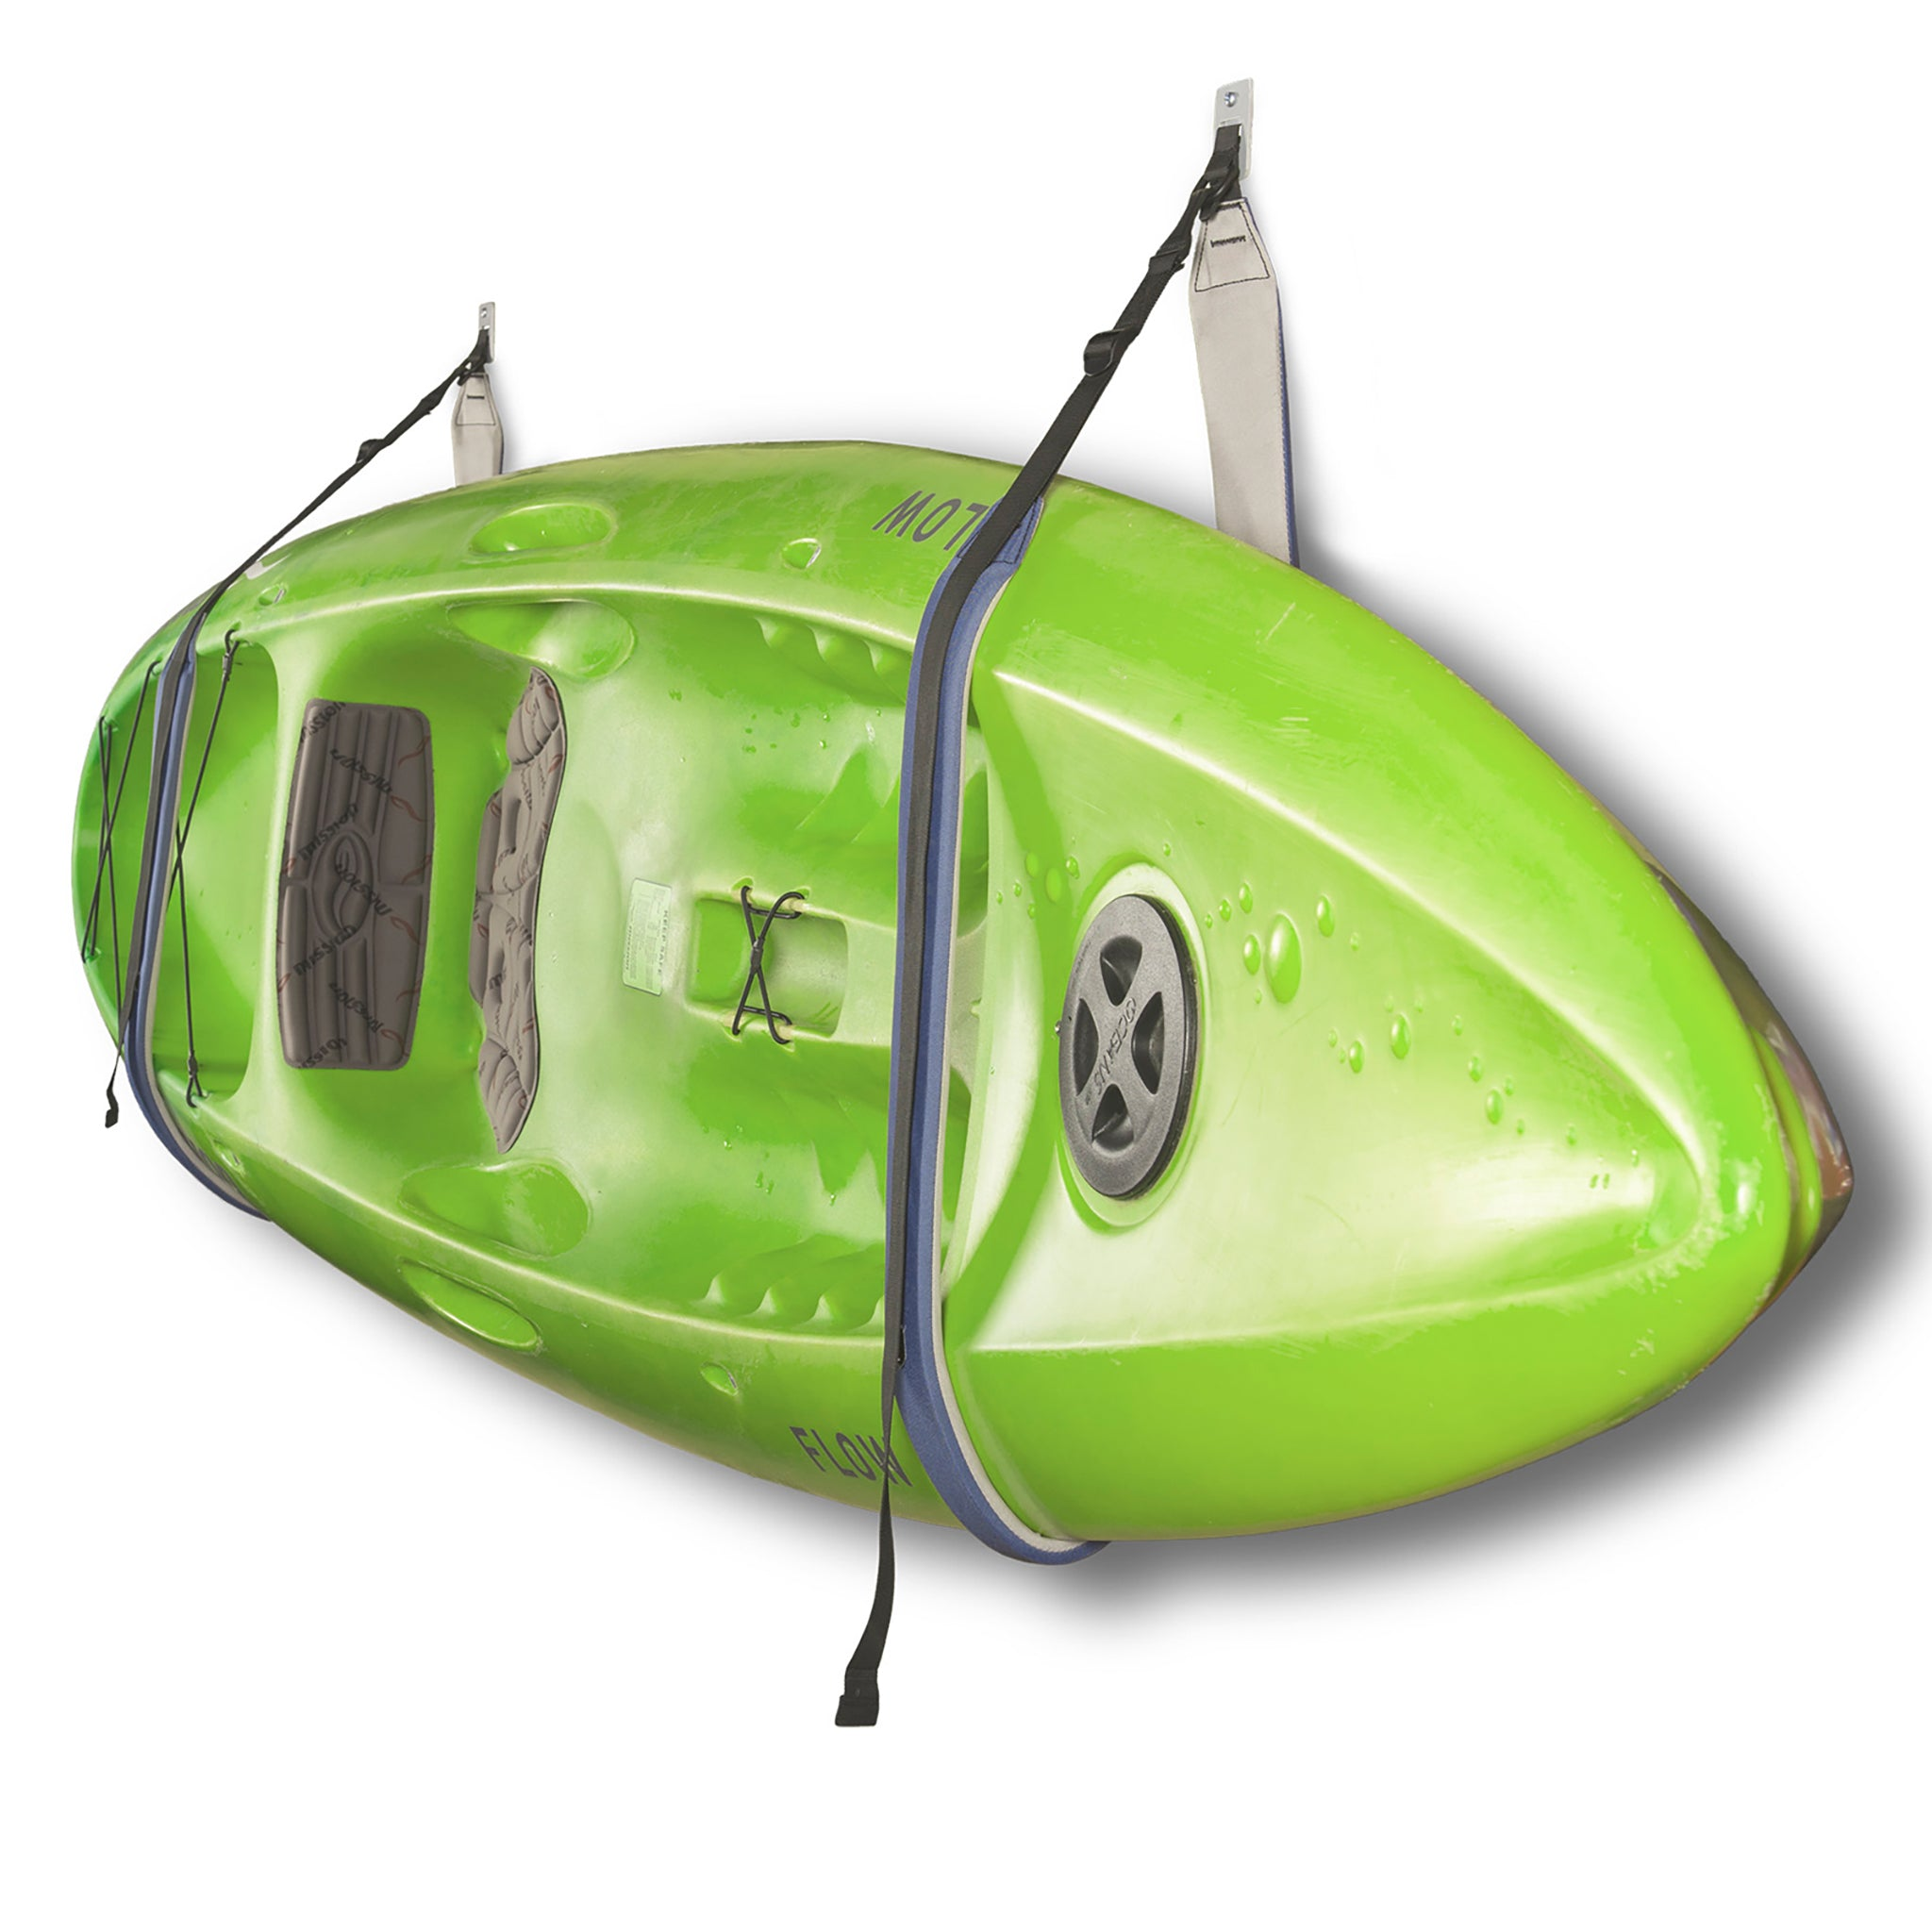 Aquasling _ kayak wall rack _ kayak storage